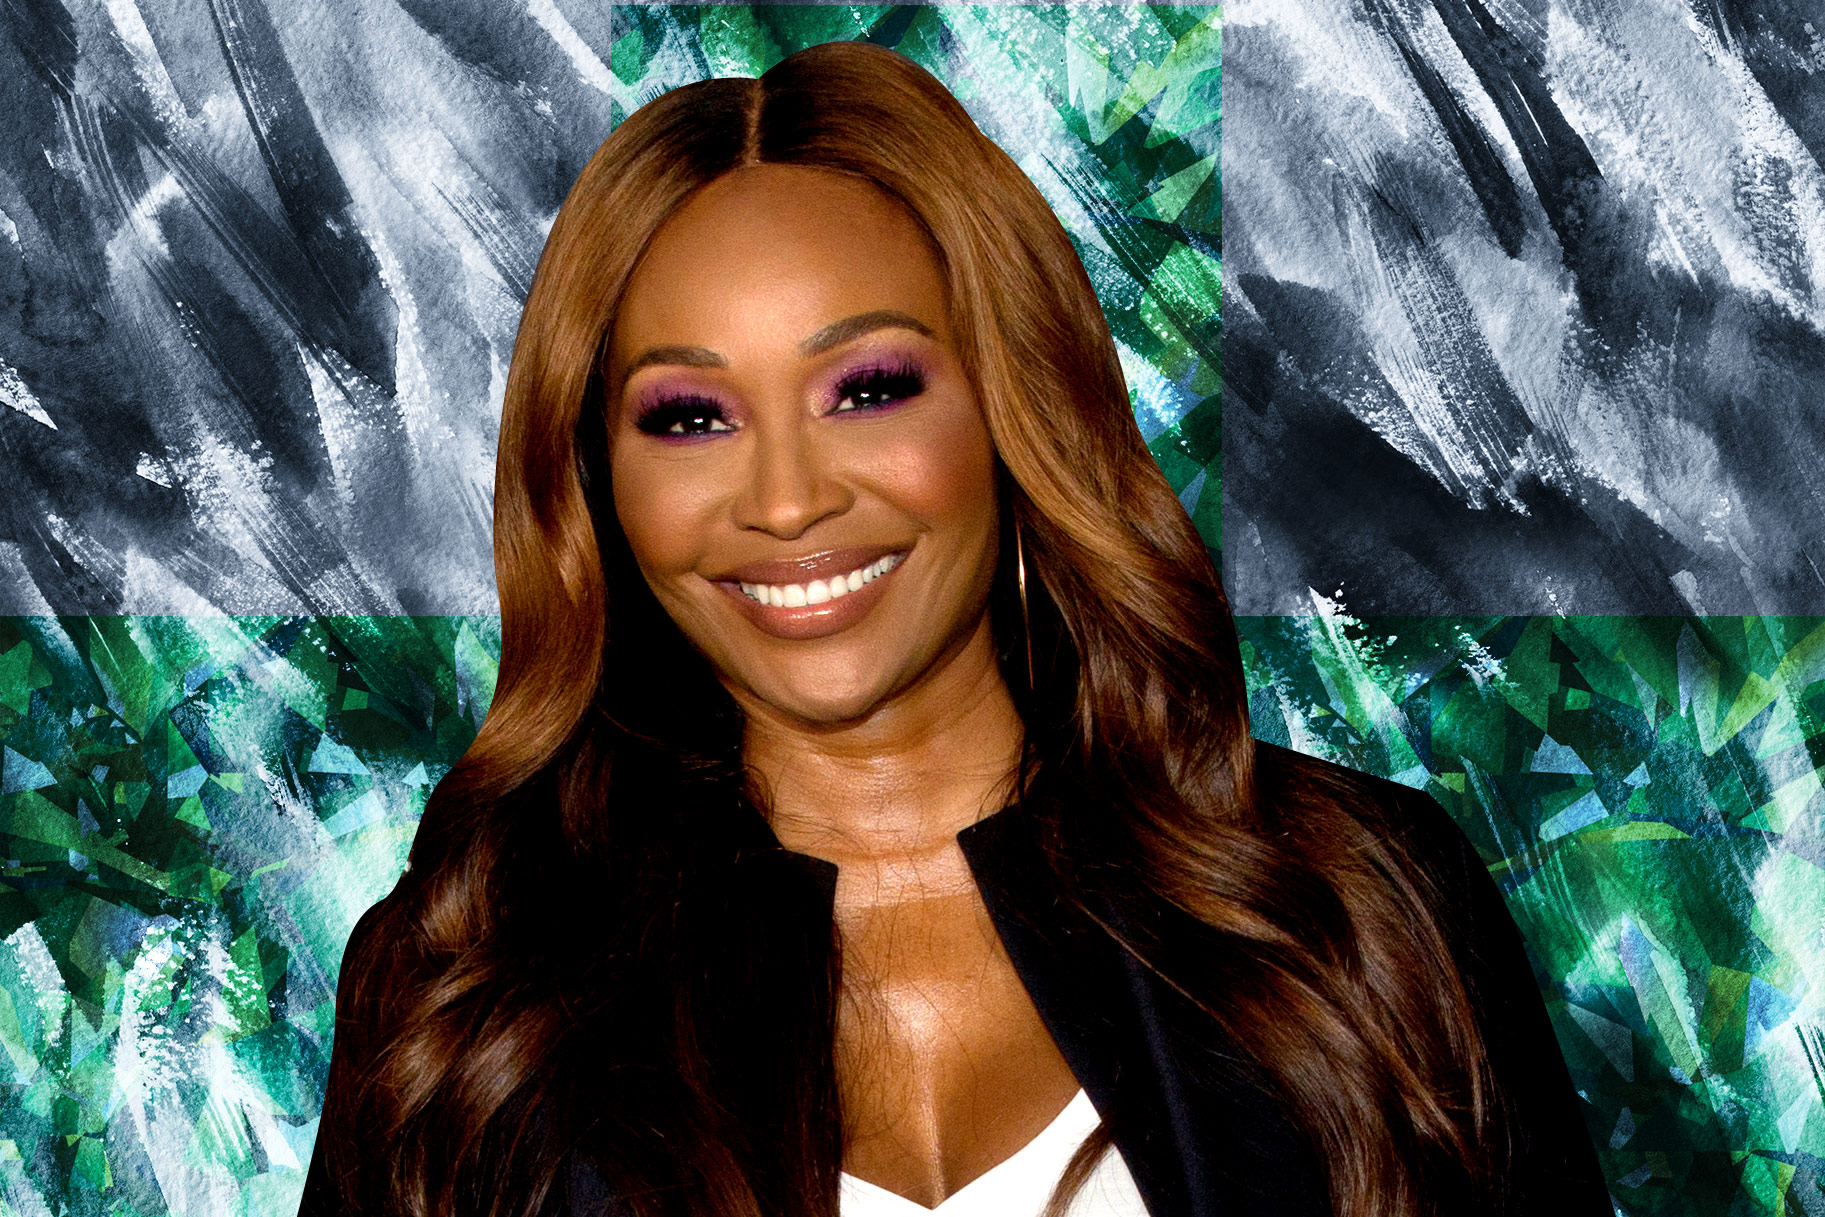 Cynthia Bailey Receives Unexpected Visitors At The Lake House - Watch The Video